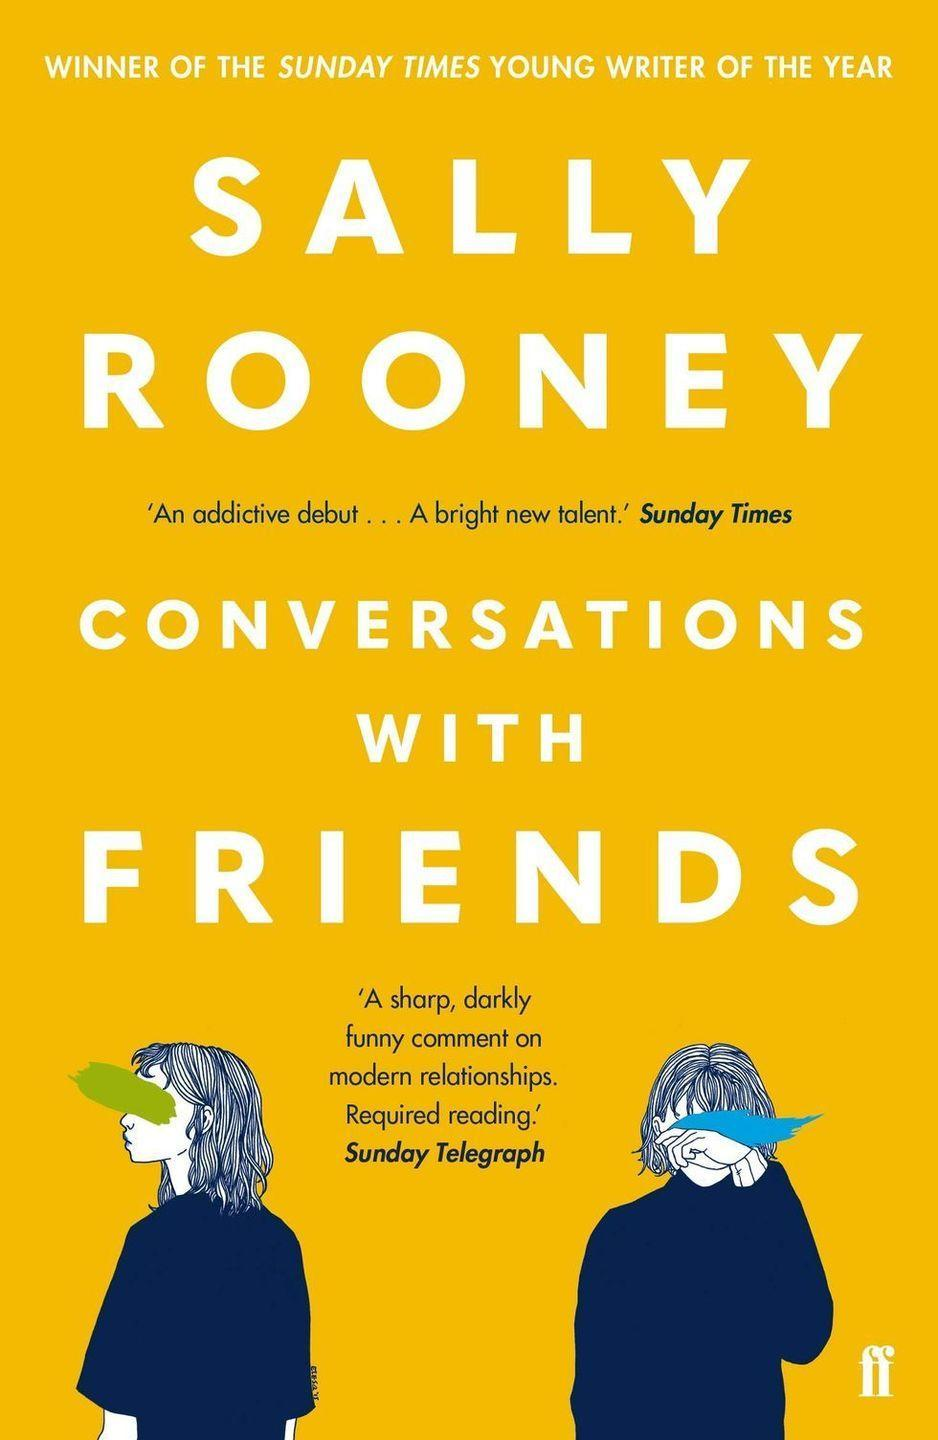 <p><strong>Release date: Spring/ Summer on BBC Three</strong></p><p>Not content with essentially winning the 2020 TV content crown with Normal People, the same team are now adapting Sally Rooney's first novel Conversations with Friends.</p><p>Despite the two stories being completely different, the latest adaption will also be set in Dublin and follows a similar vein of exploring the nuances and complexities of the main characters' relationships. </p><p>Watch as Frances, Bobbi, Nick and Melissa's lives and loves become intertwined, with devastating results - and look out for a possible Normal People's Marianne crossover - after eagle-eyed Rooney fans spotted a character of the same name briefly appearing in the book.</p>